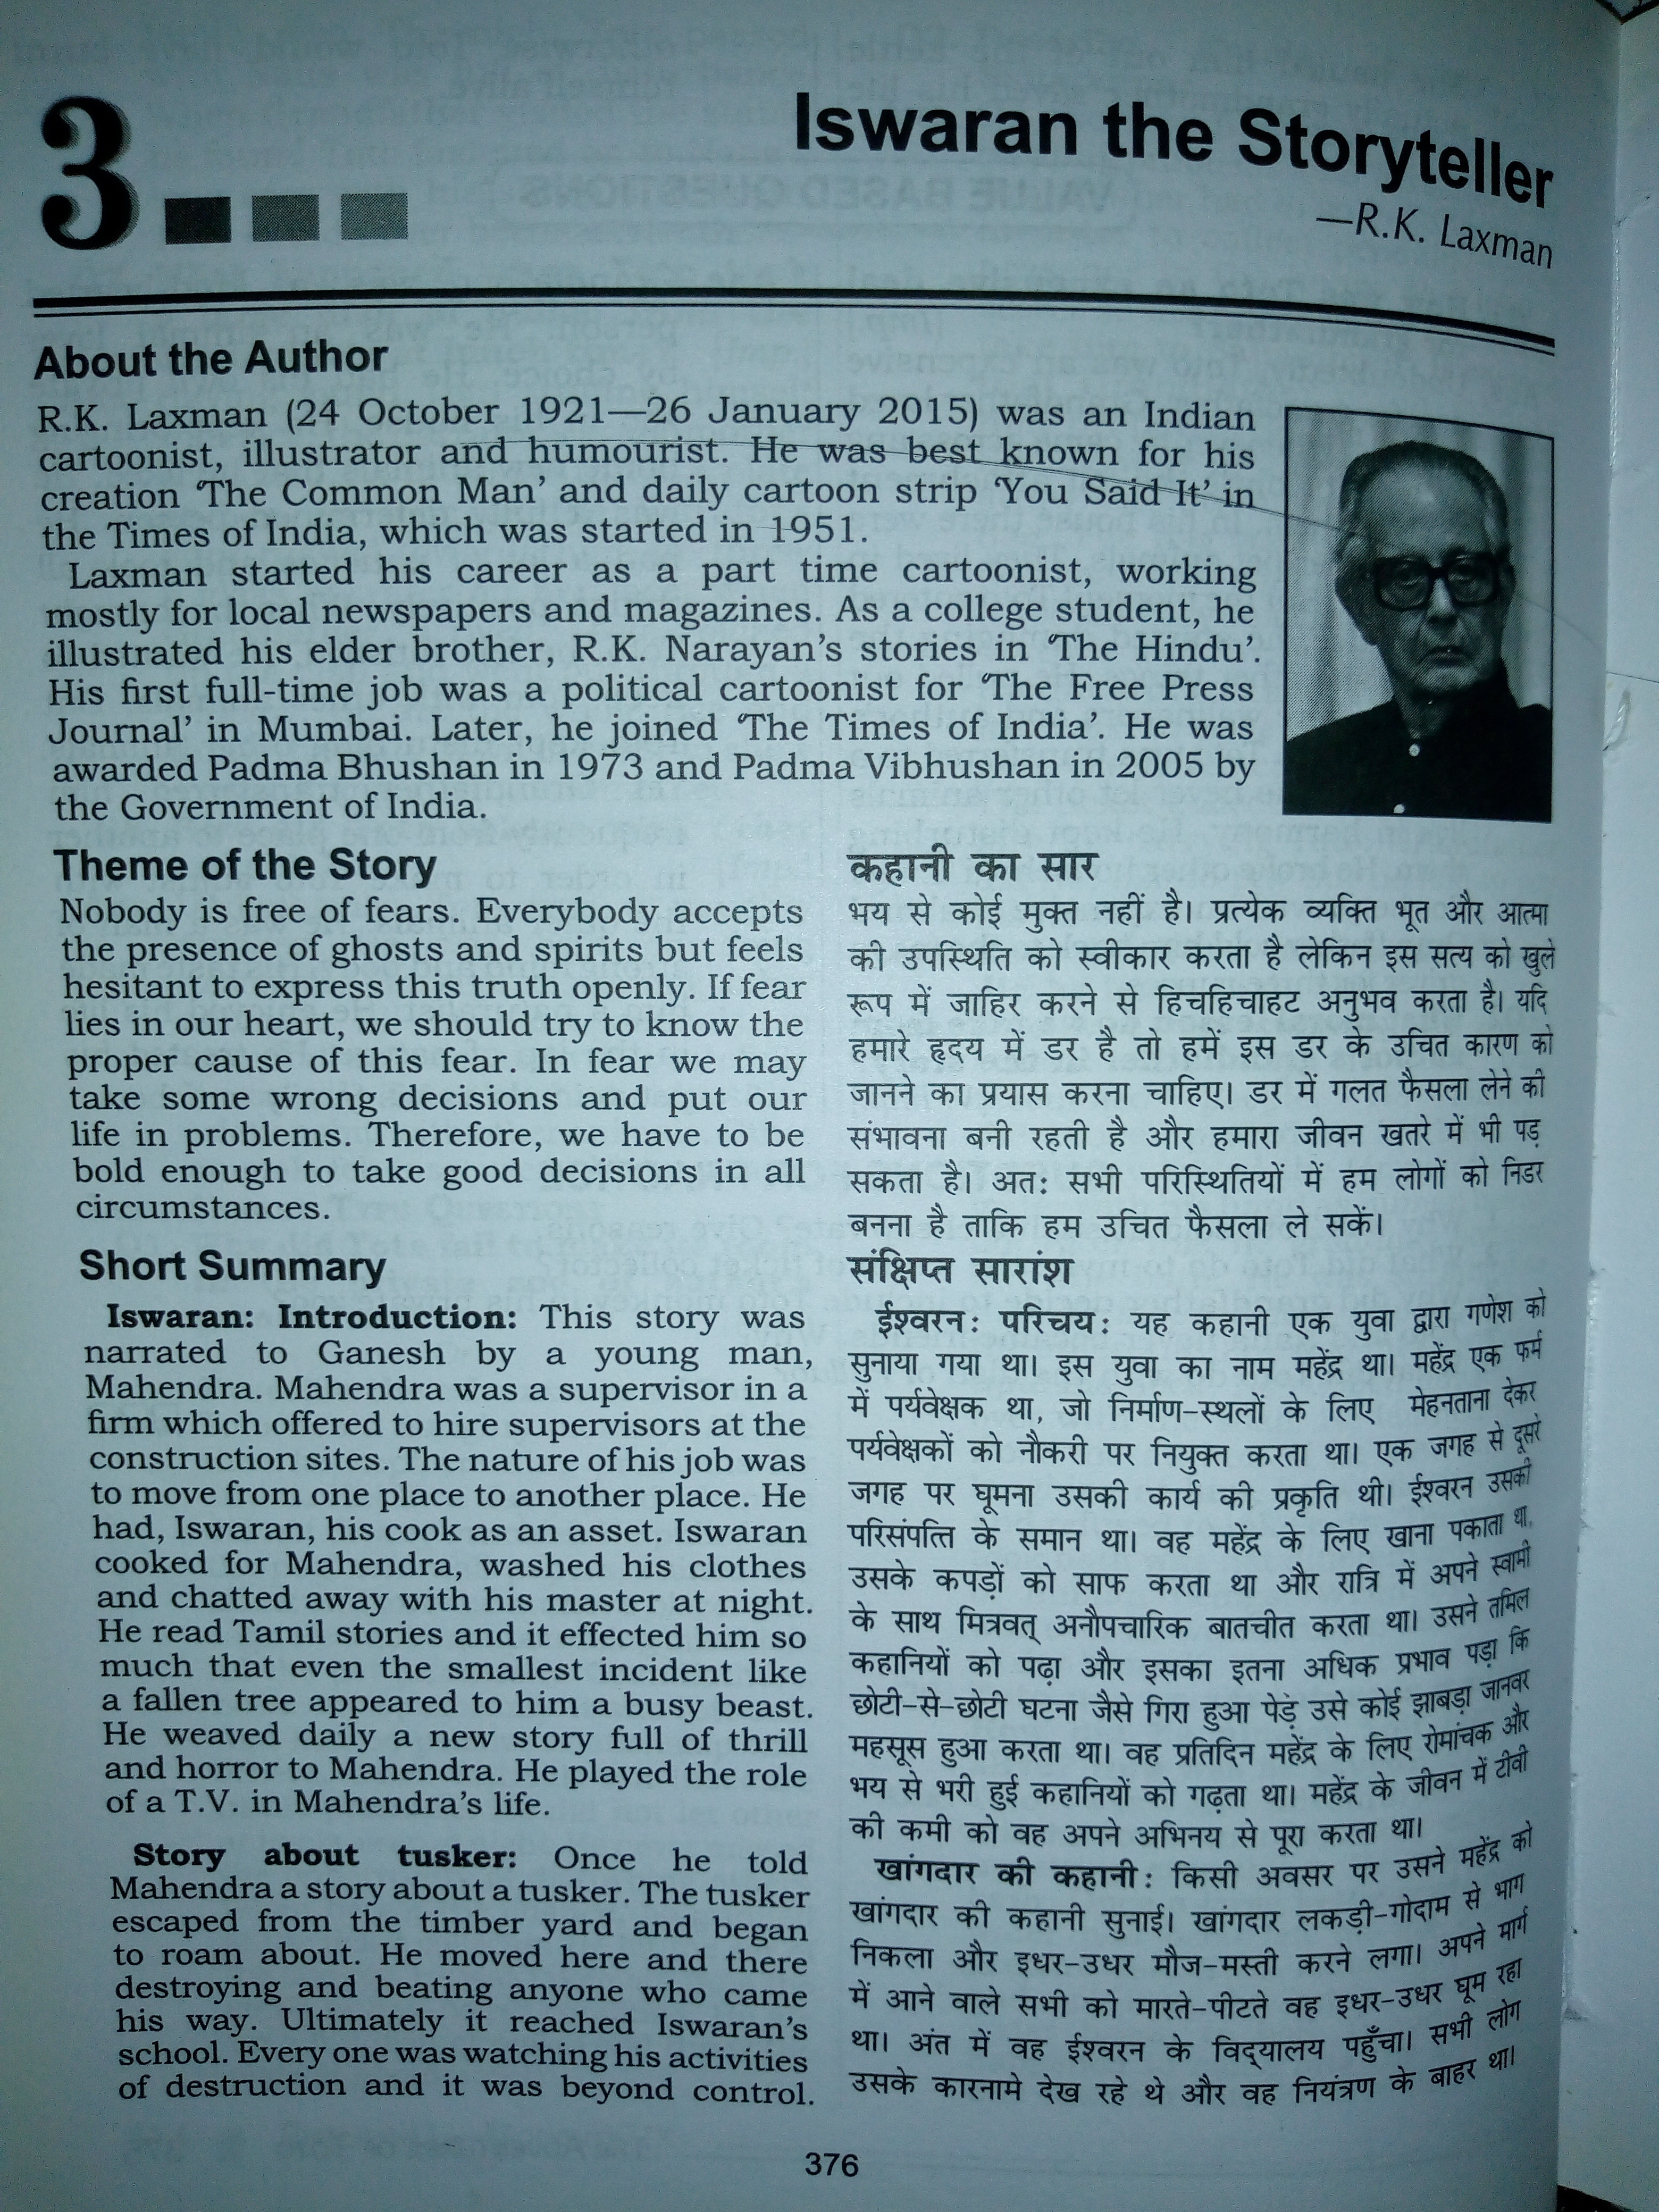 class 9 english ncert moments chapter 3 (ishwaran the story teller